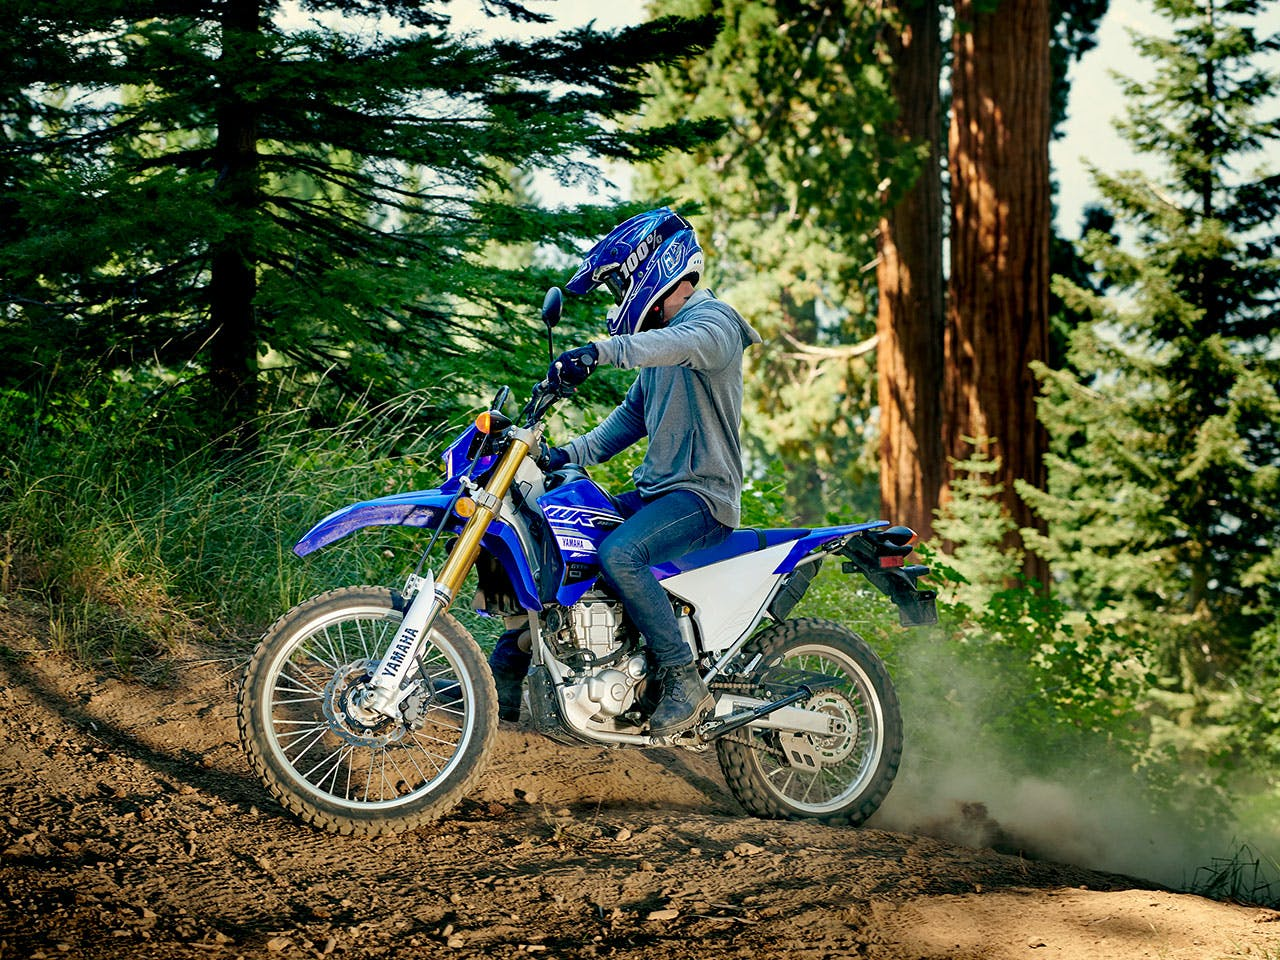 Yamaha ER250R in Team Yamaha Blue and white colour, being ridden off-track